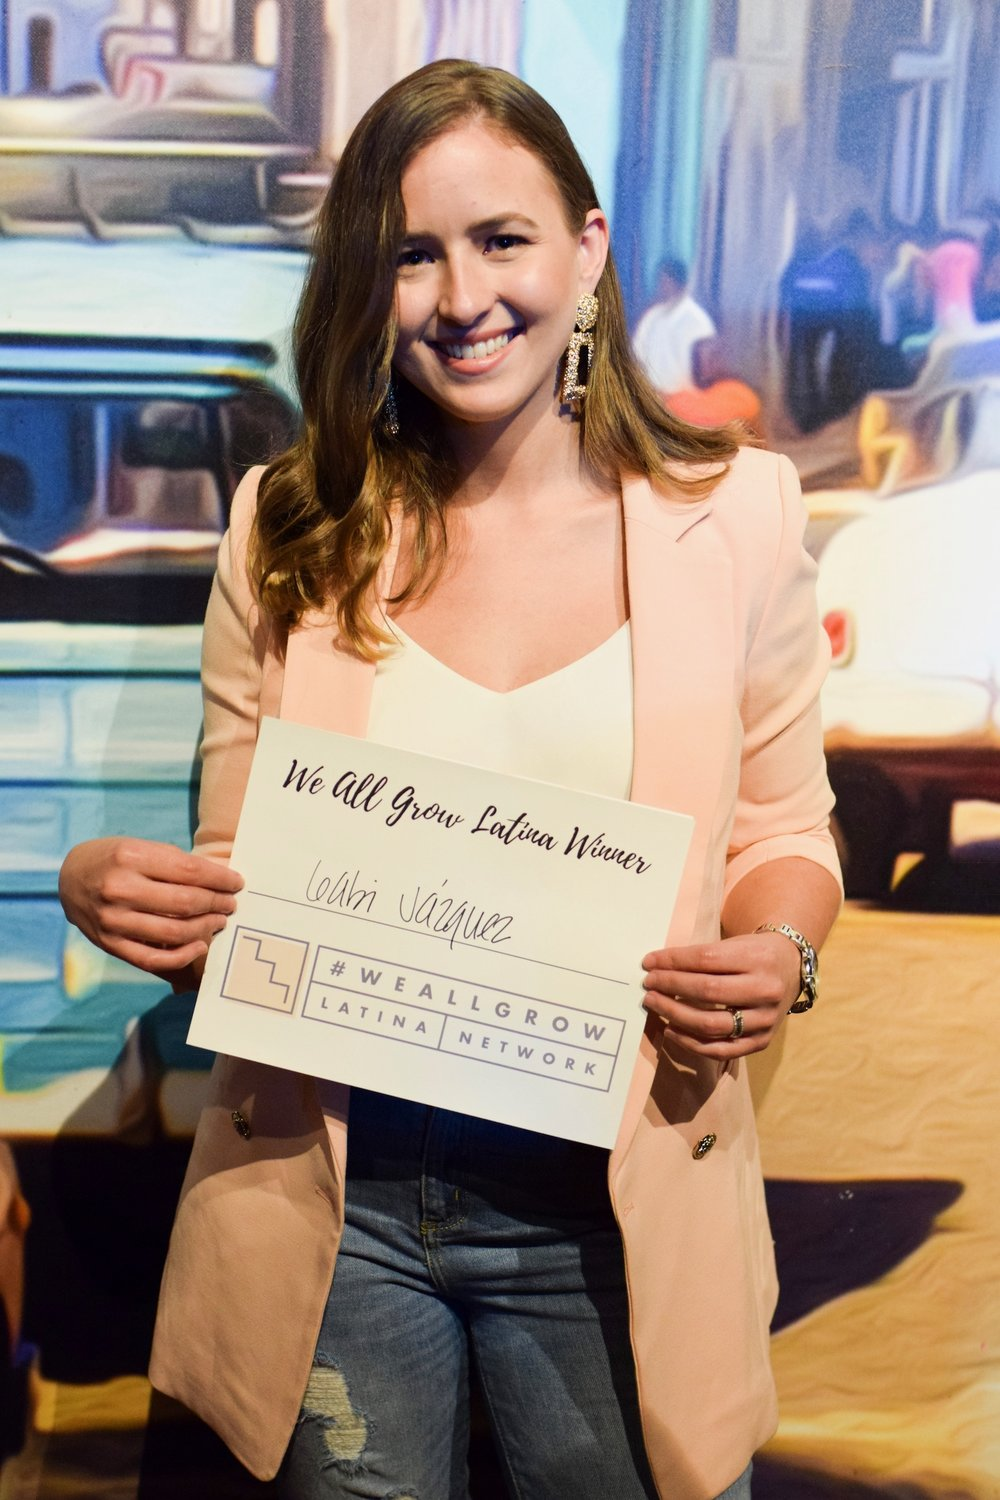 Congrats to Gabby  @never_outofstyle  for winning 1 year membership with We All Grow Latina!